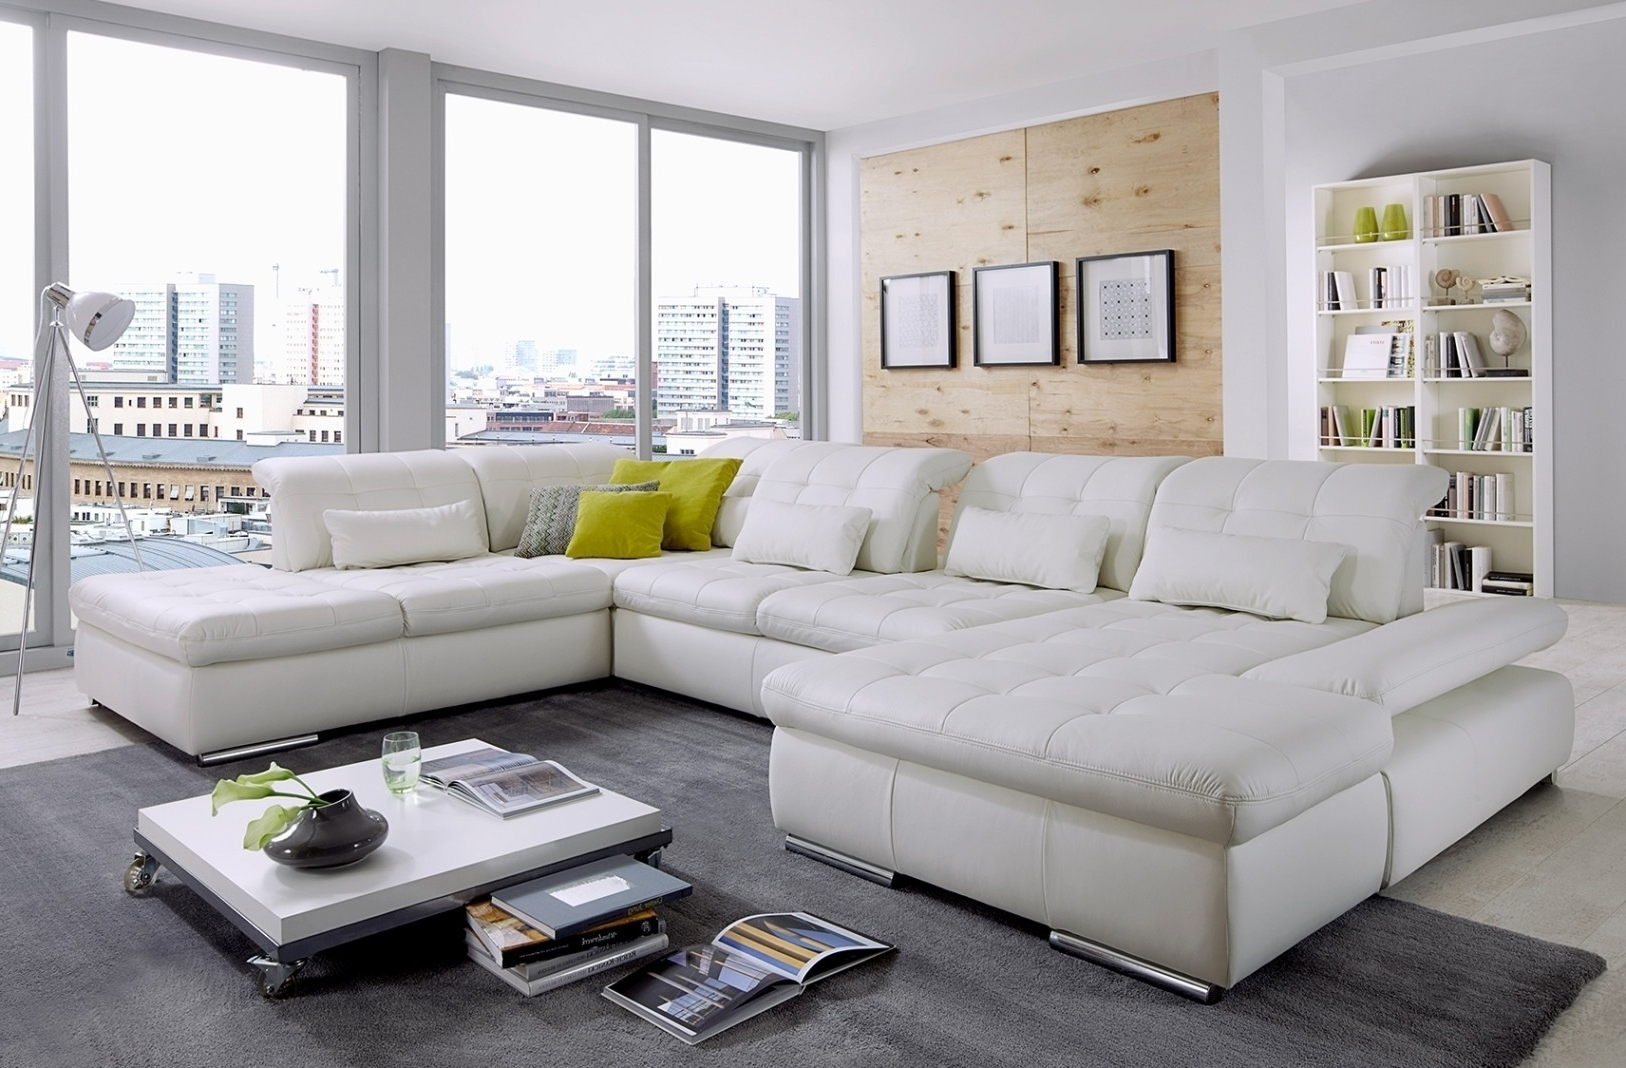 Featured Photo of Trinidad And Tobago Sectional Sofas